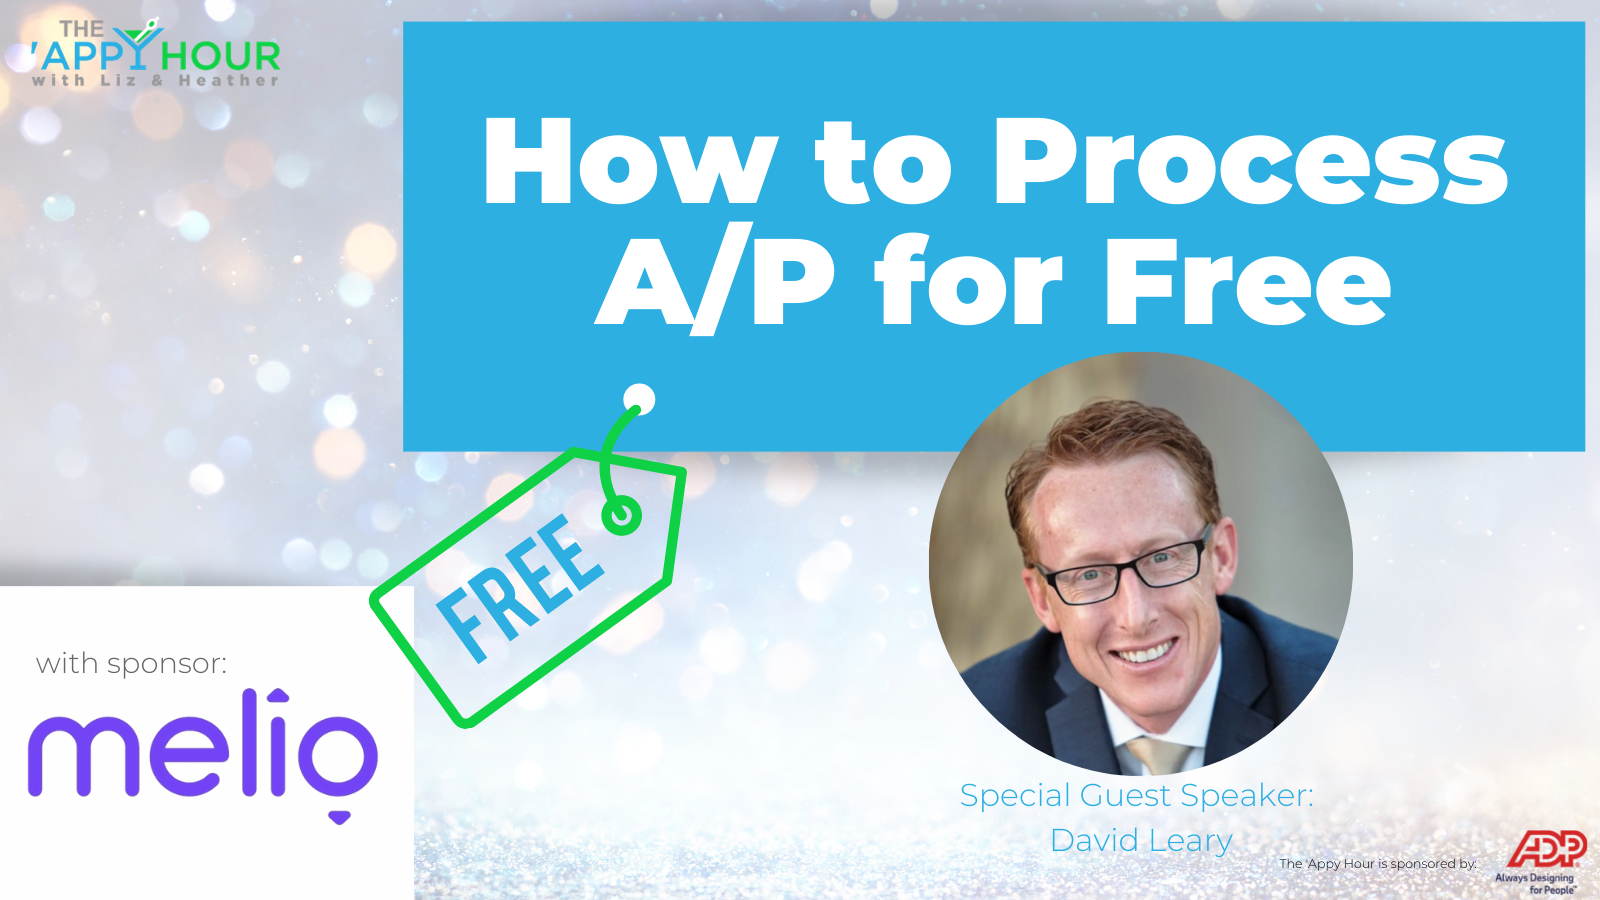 Process A/P for free